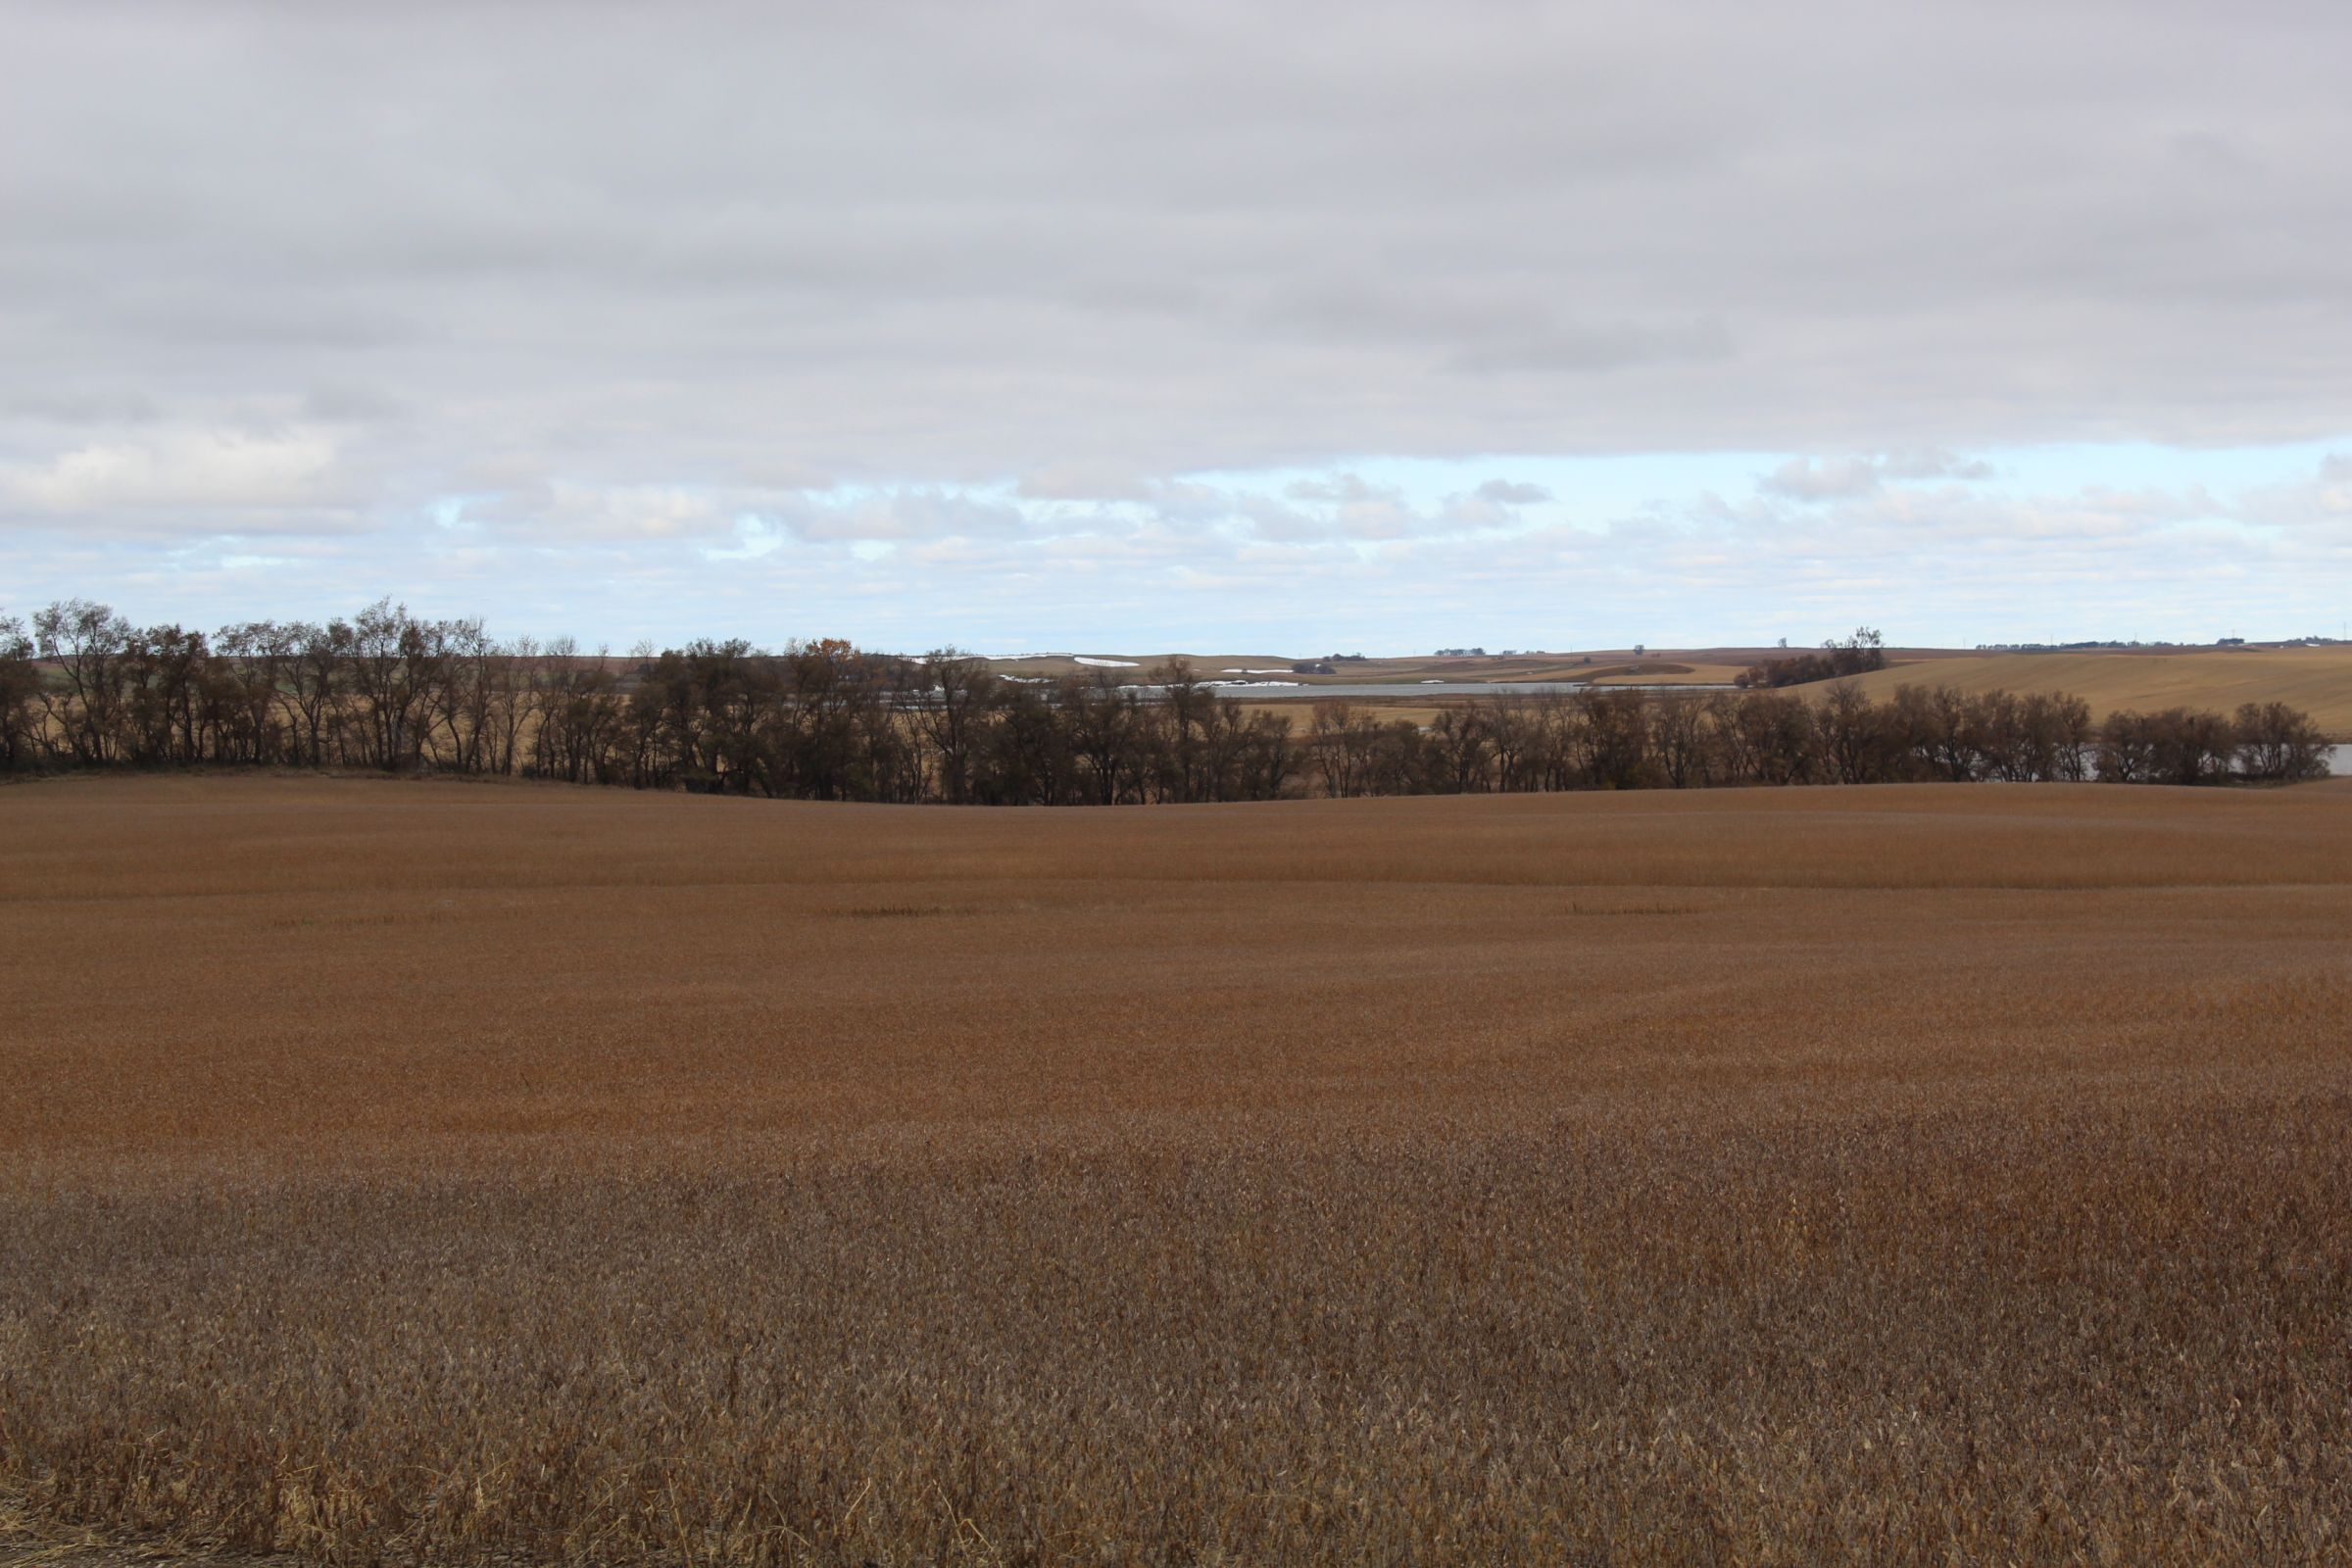 stutsman-county-north-dakota-312-acres-listing-number-15116-0-2020-08-12-141904.JPG